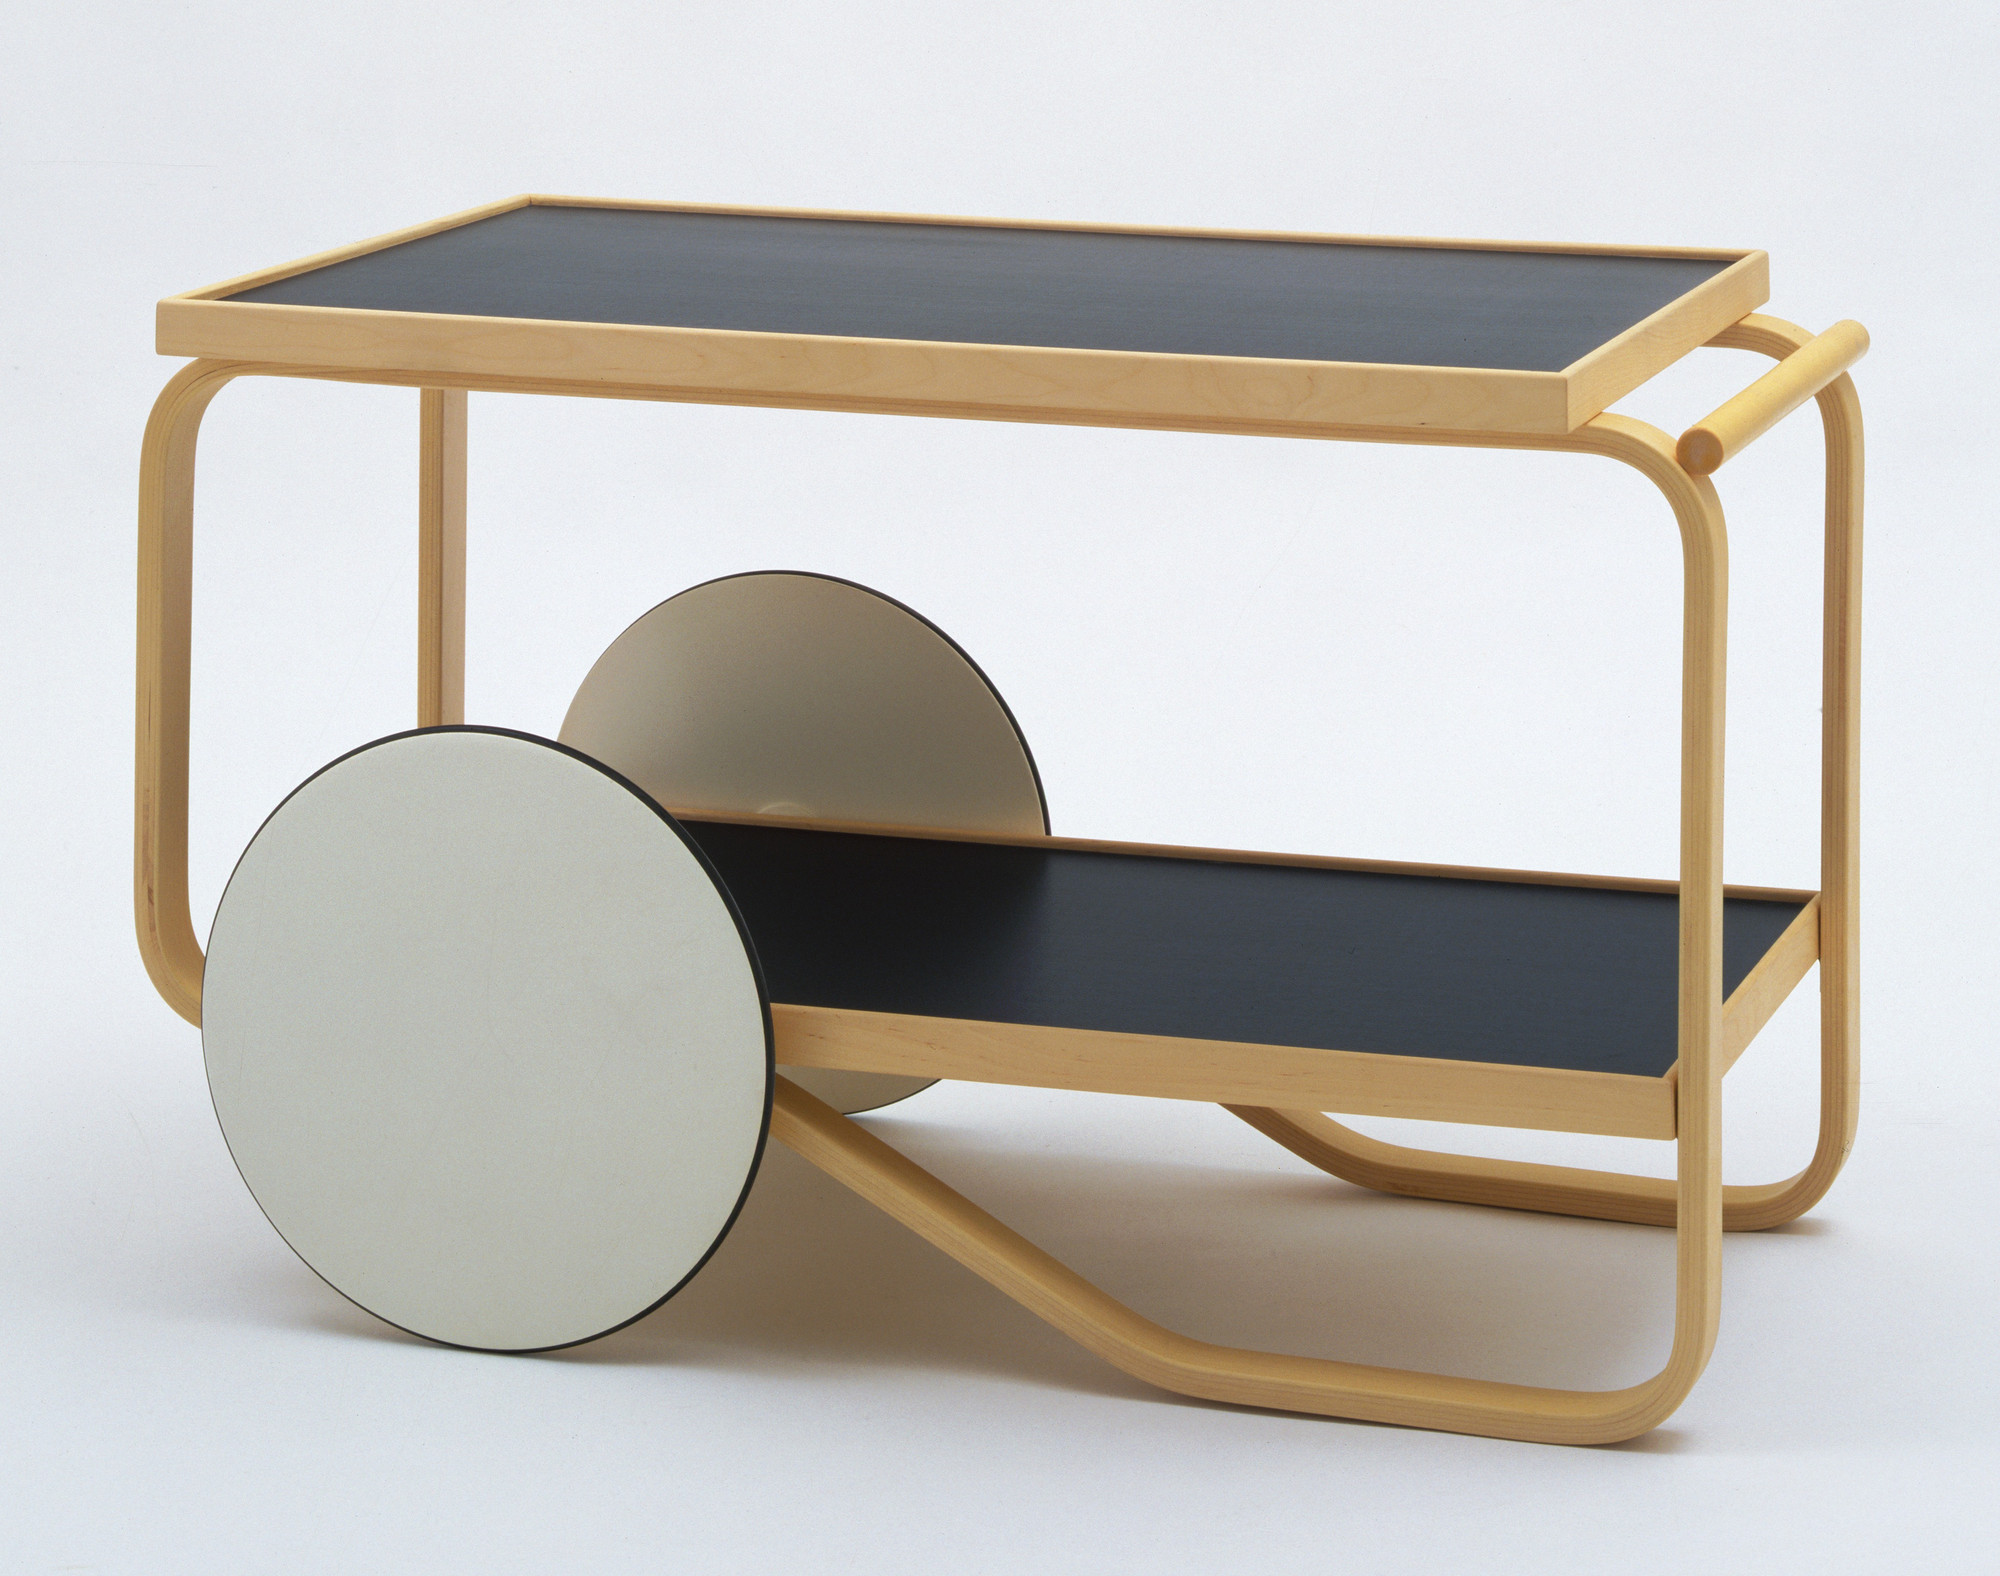 Alvar Aalto. Tea Trolley (model 98). 1936-37